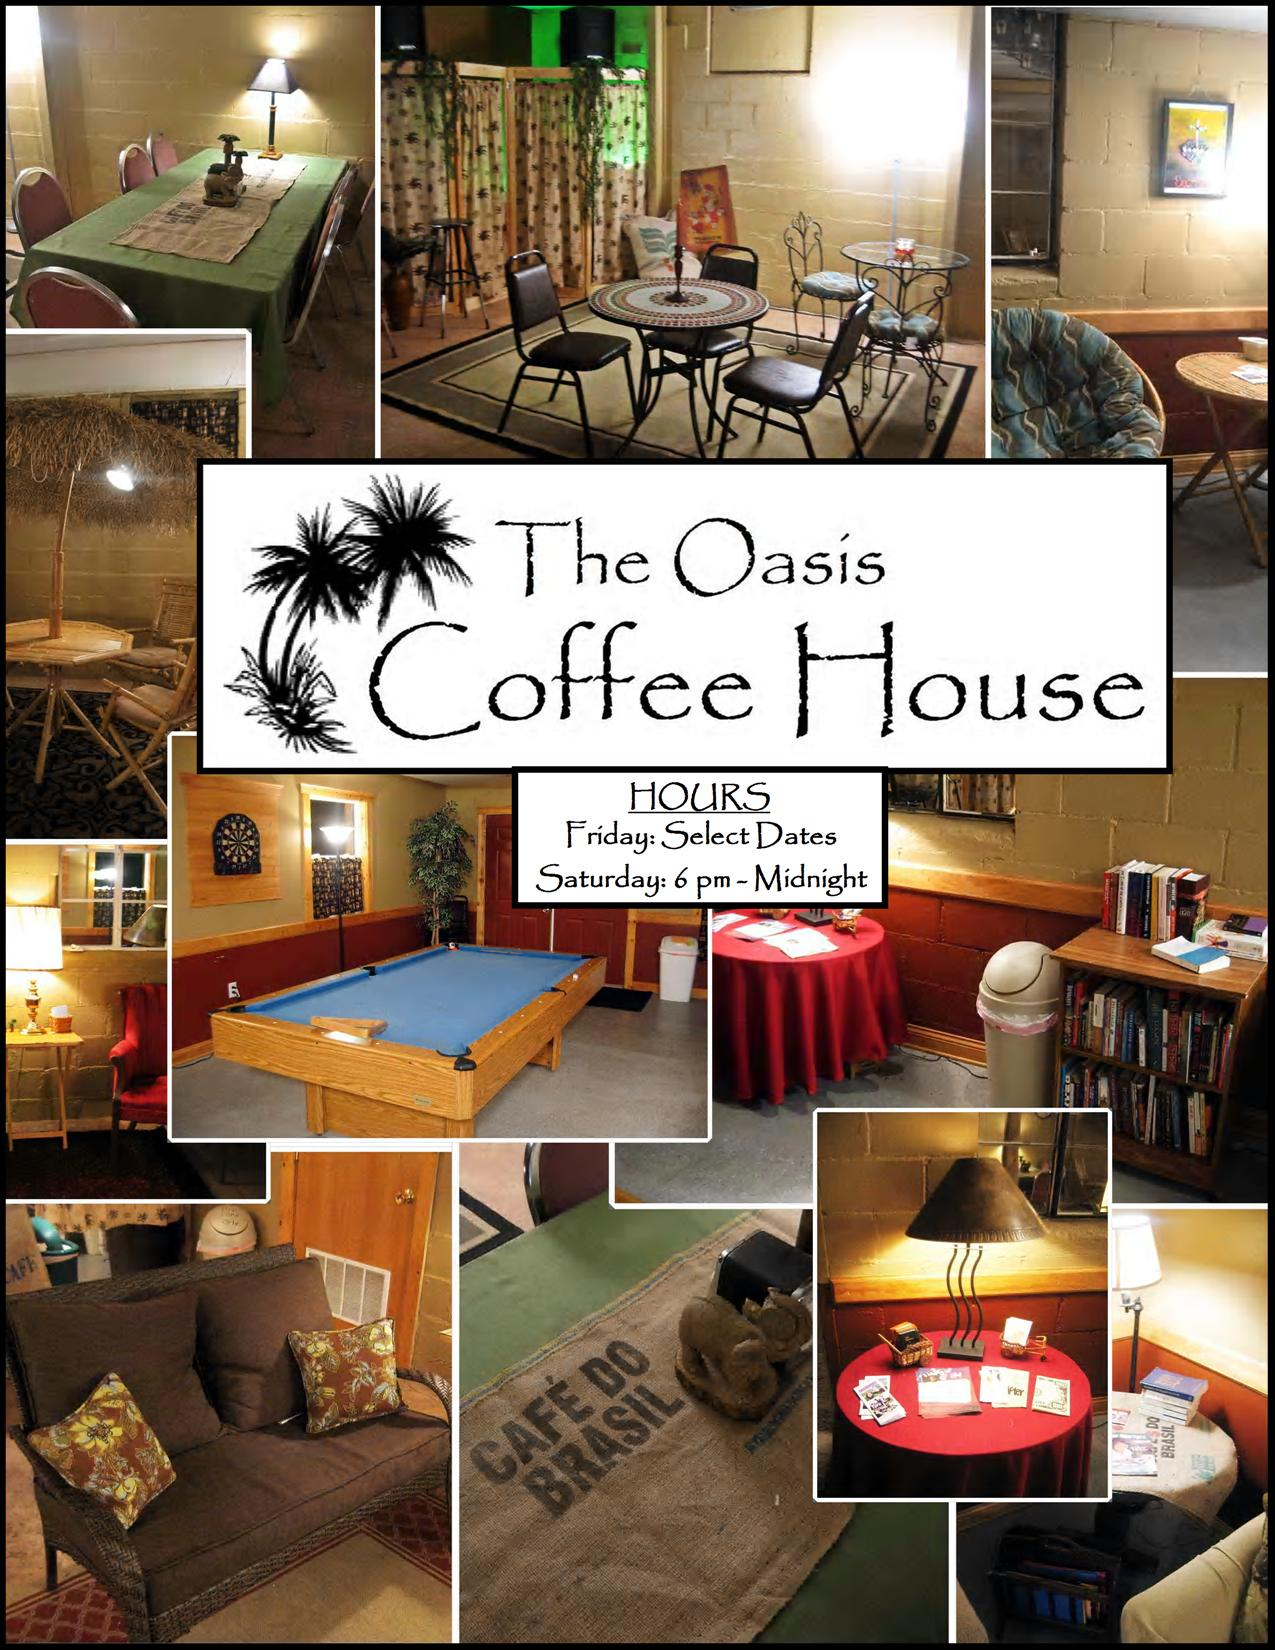 The Oasis Coffehouse, 86858 Hwy 57, Belden, NE, 68717, United States